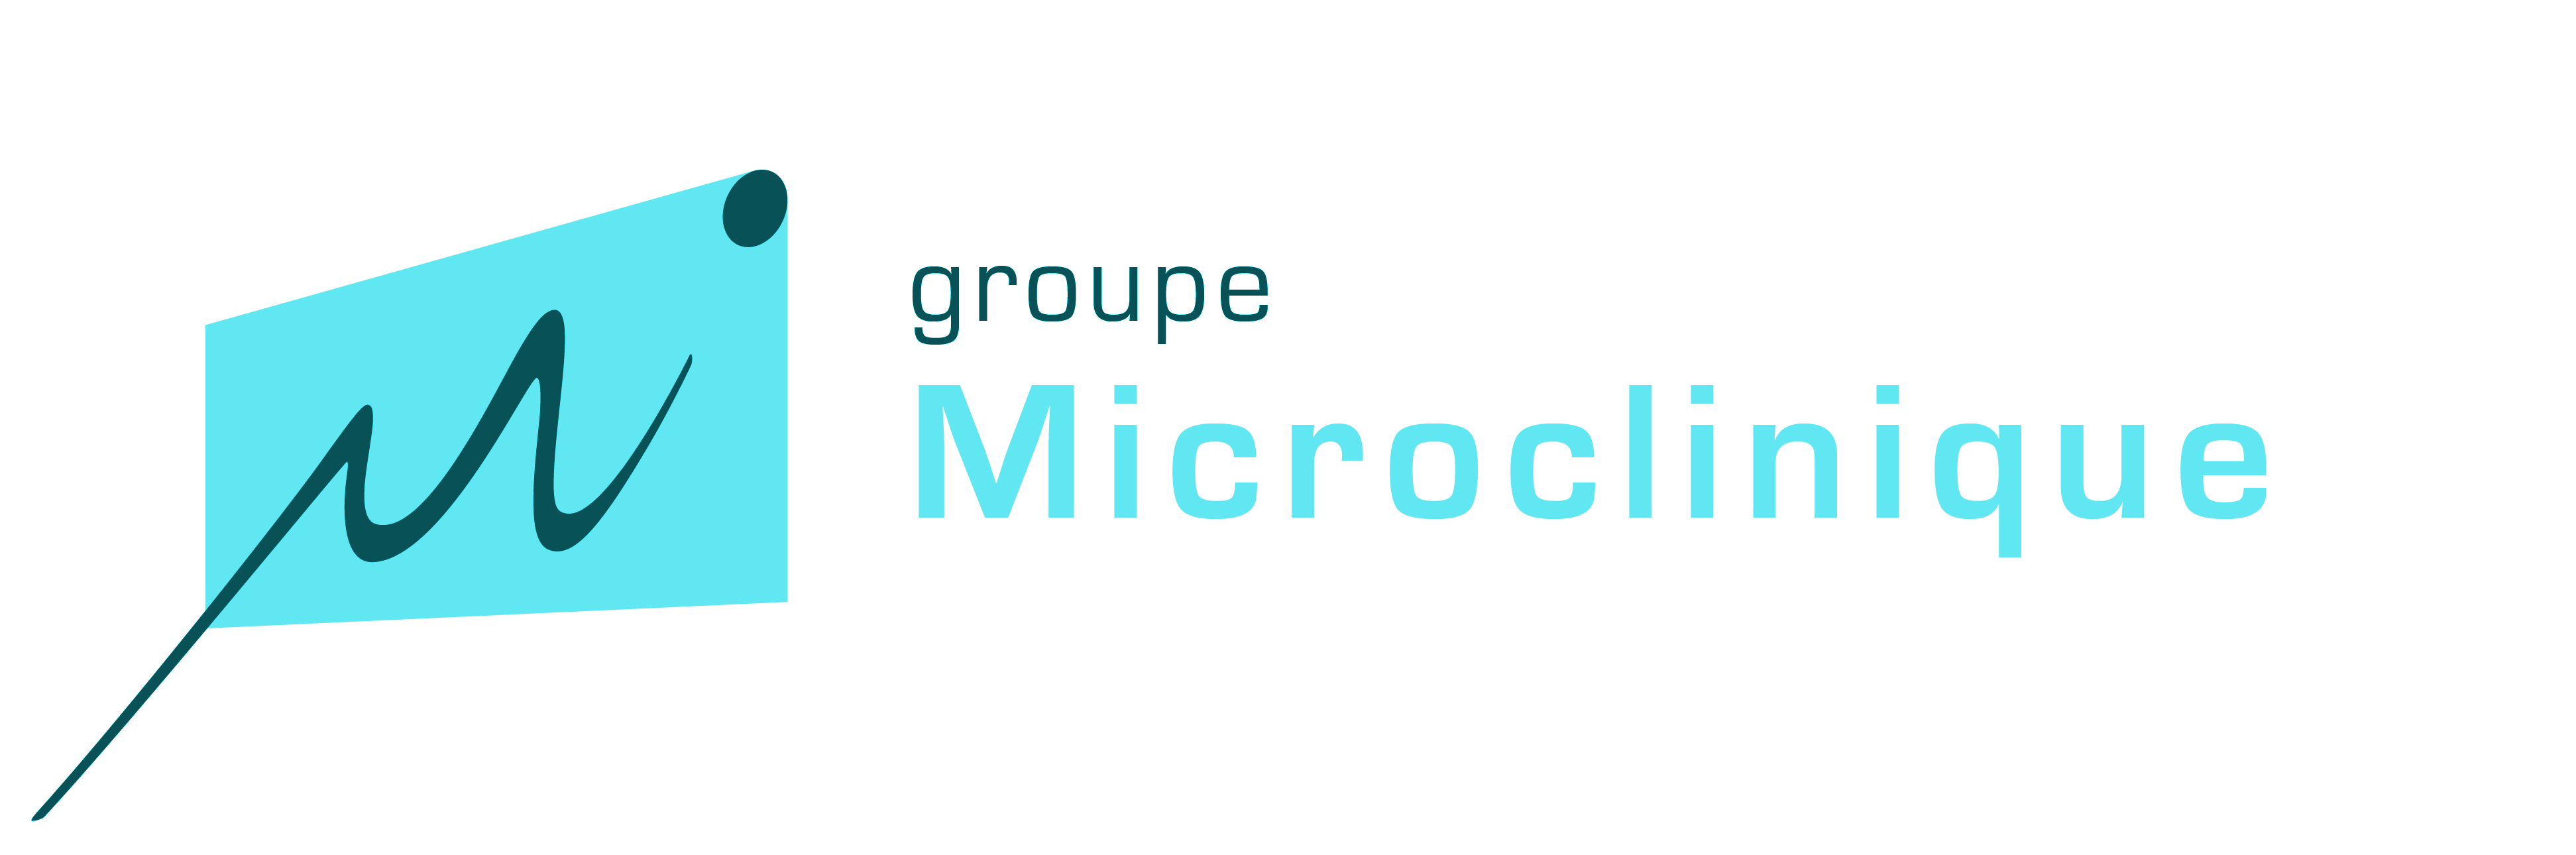 Logo Microclinique